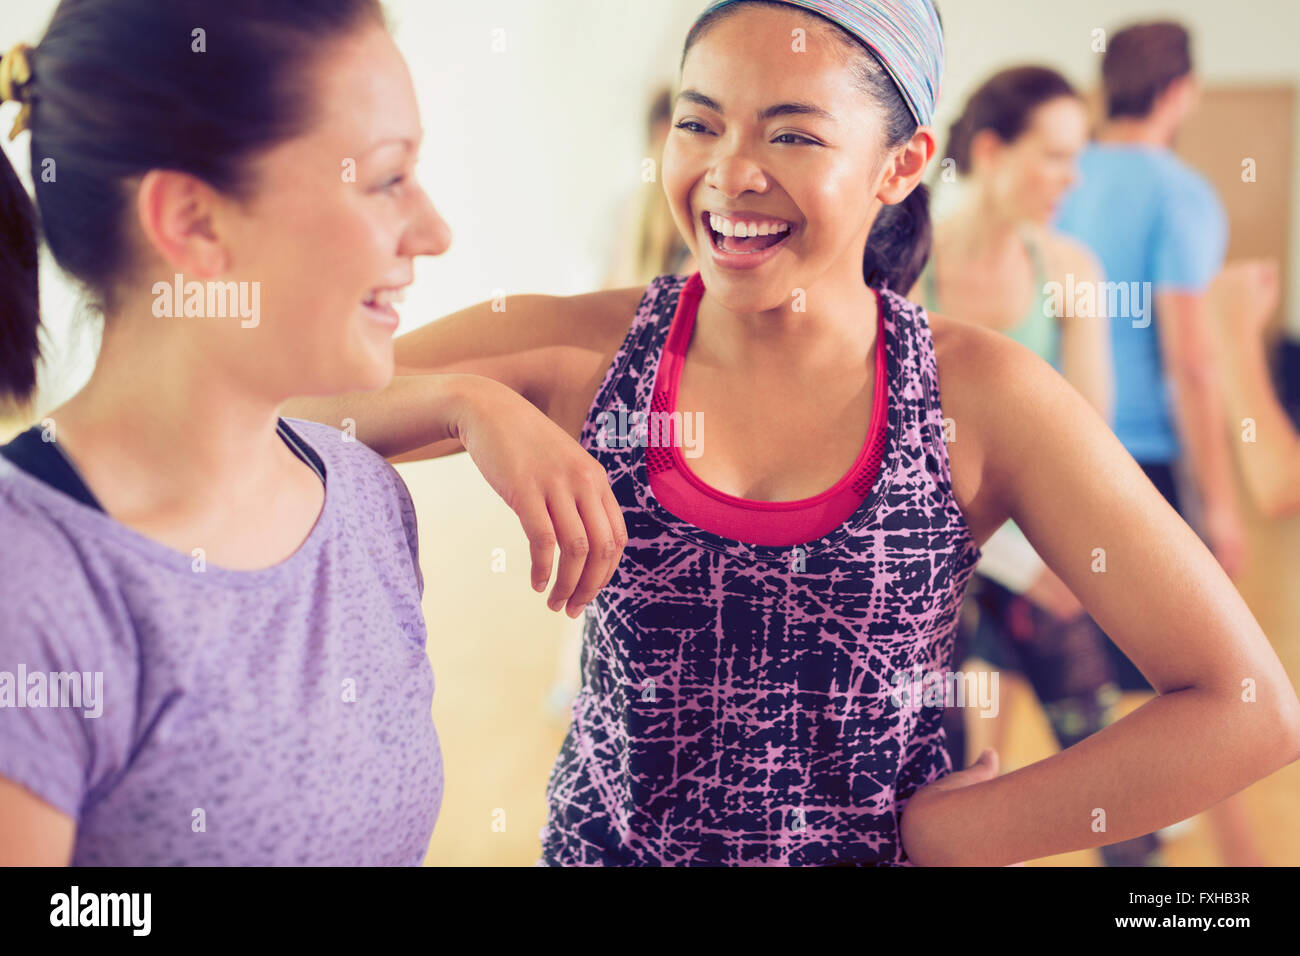 Laughing women in exercise class - Stock Image